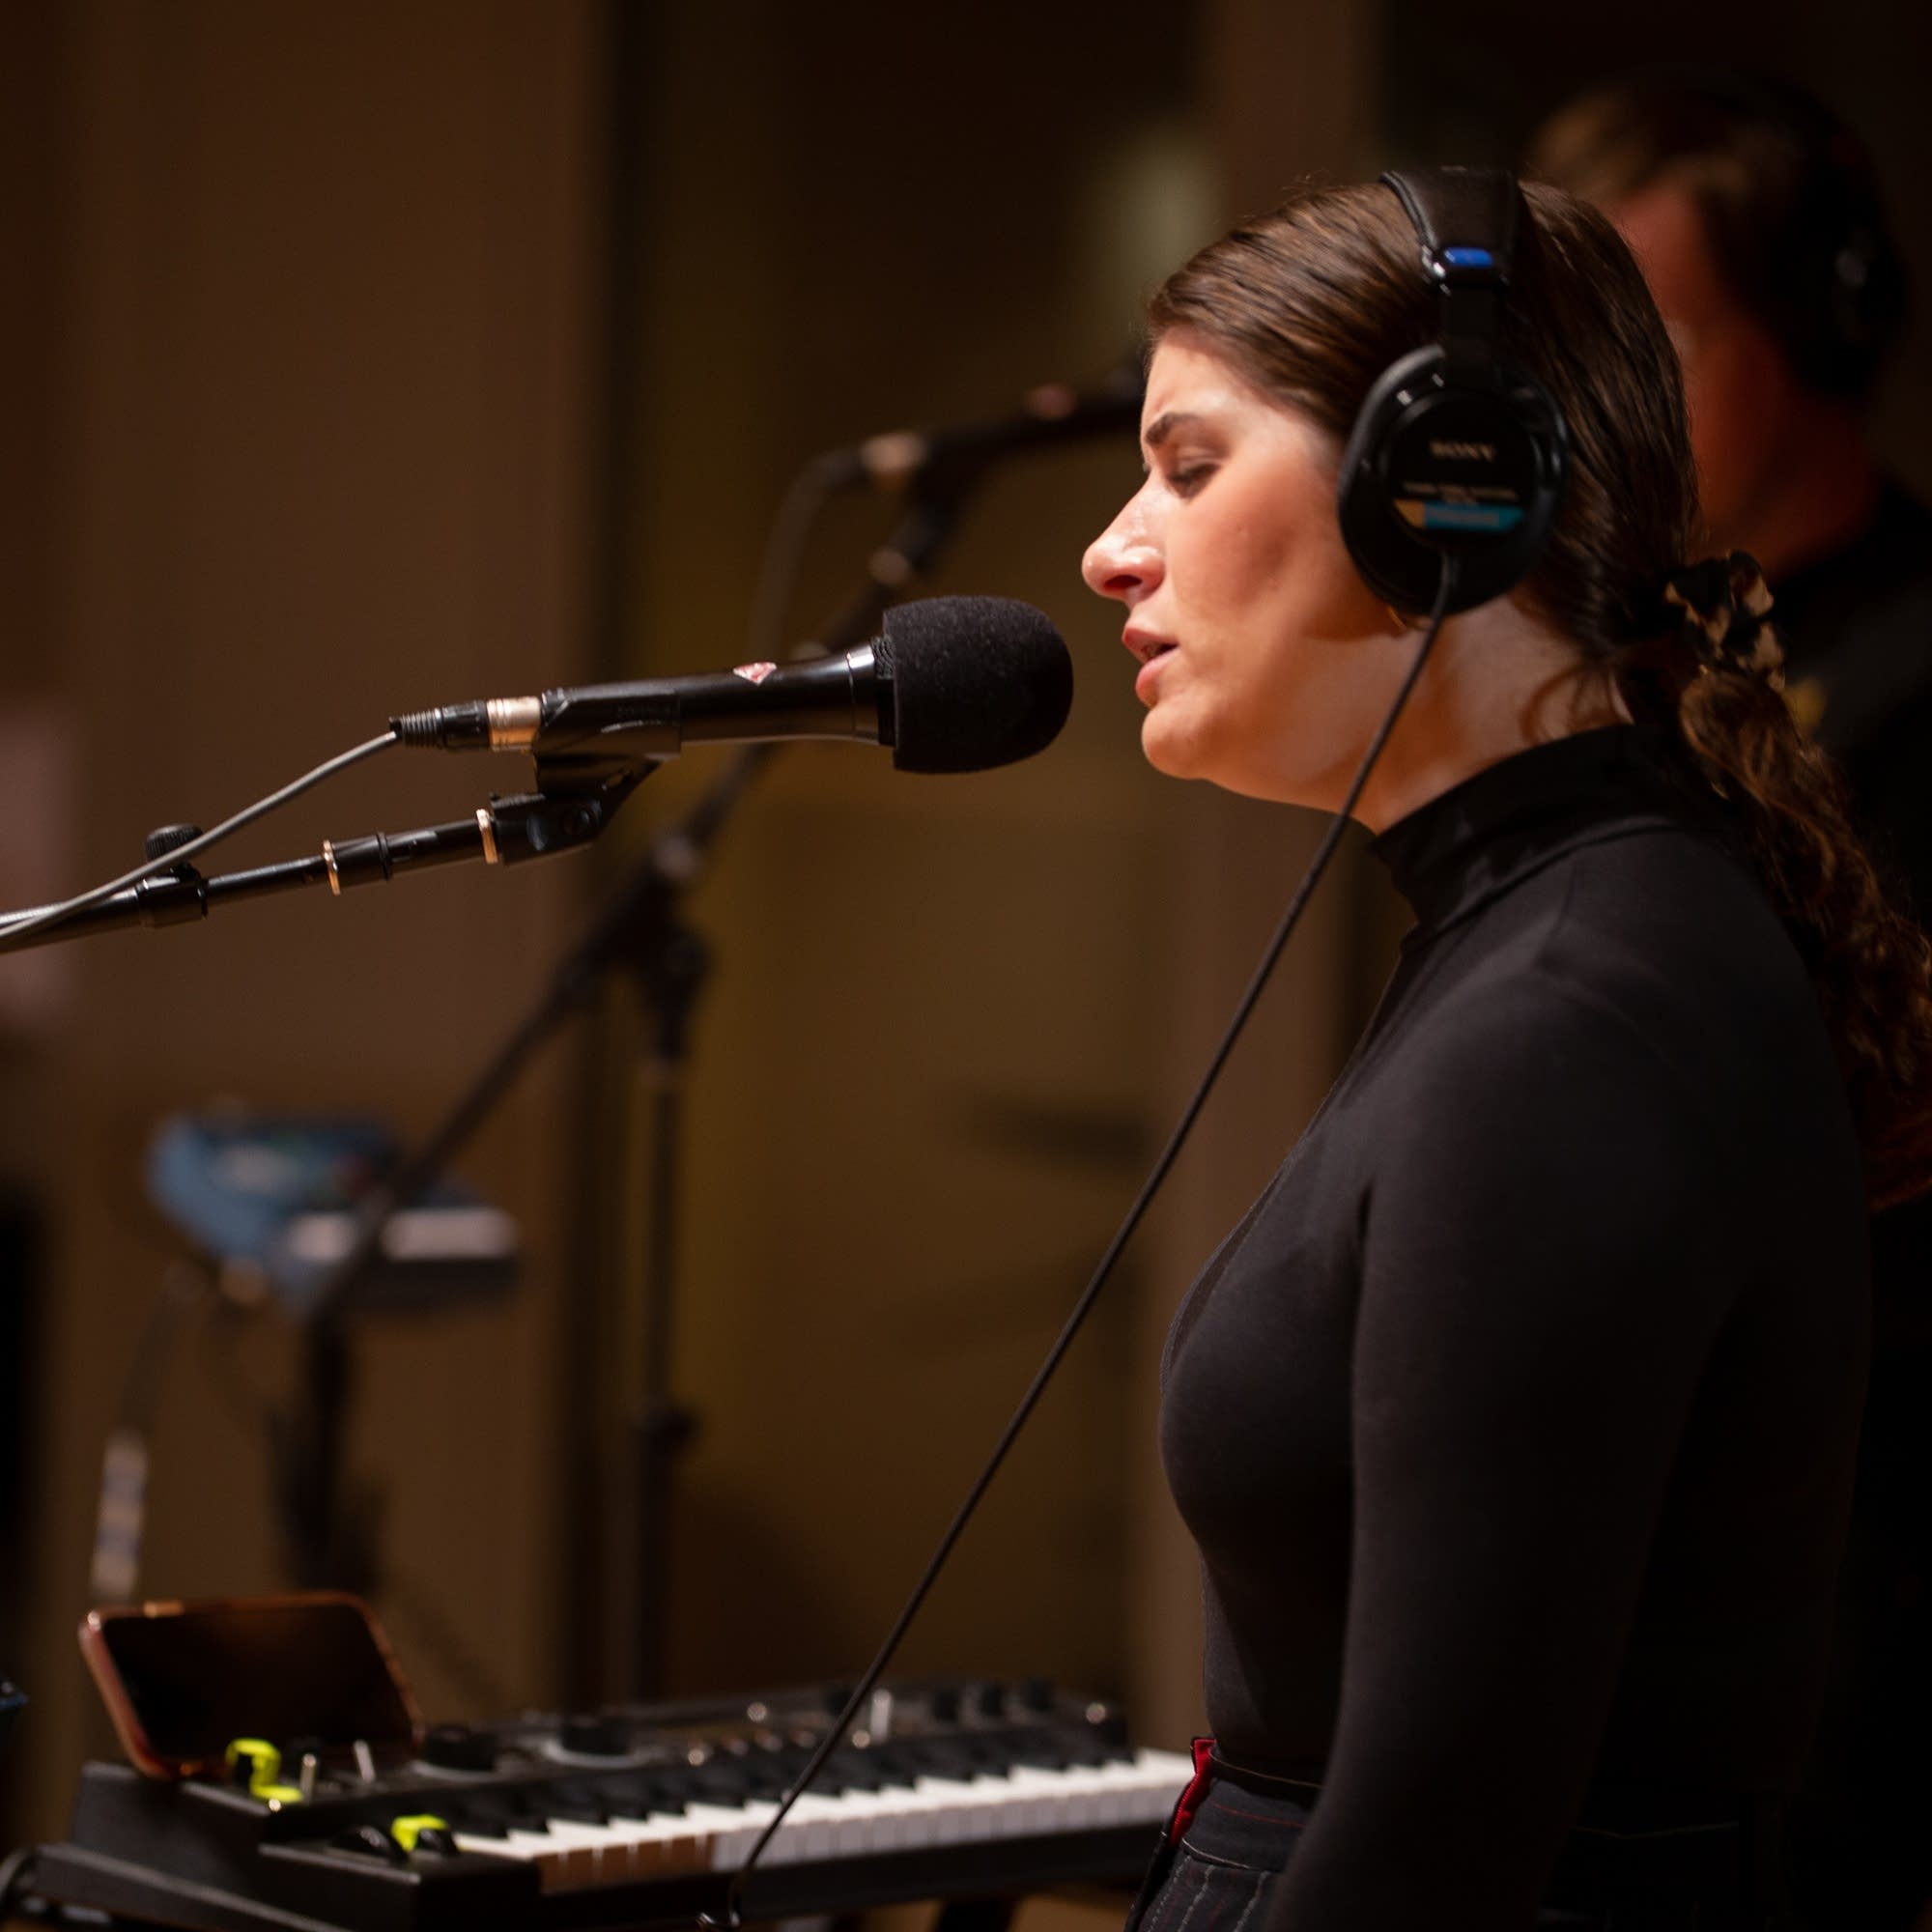 Best Coast perform in The Current studio